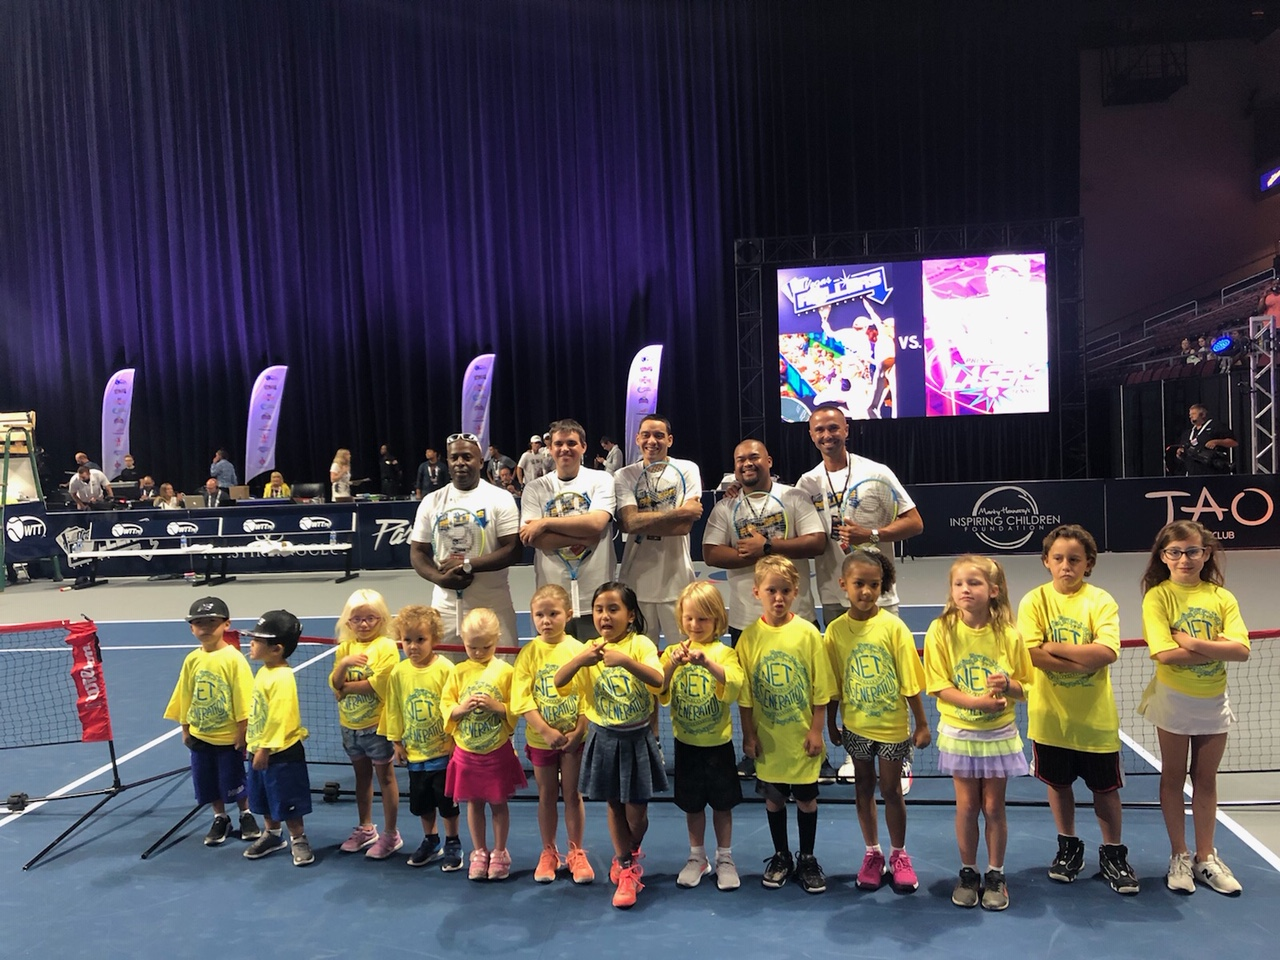 USPTA U30 Volunteers Offer Clinic in Las vegas - USPTA Intermountain Division VP & U30 Lead Karl Jones and USPTA U30 Professionals Rudy Abitago and Jake Lysgaard with kids at World Team Tennis in The Orleans Arena, Las Vegas, Nevada. The Las Vegas Rollers took on The Springfield Lasers in front of a sold out crowd.U30 Professionals provided a clinic for kids on the WTT court ahead of the home opener for Las Vegas, enjoying their first season with a WTT tennis team.